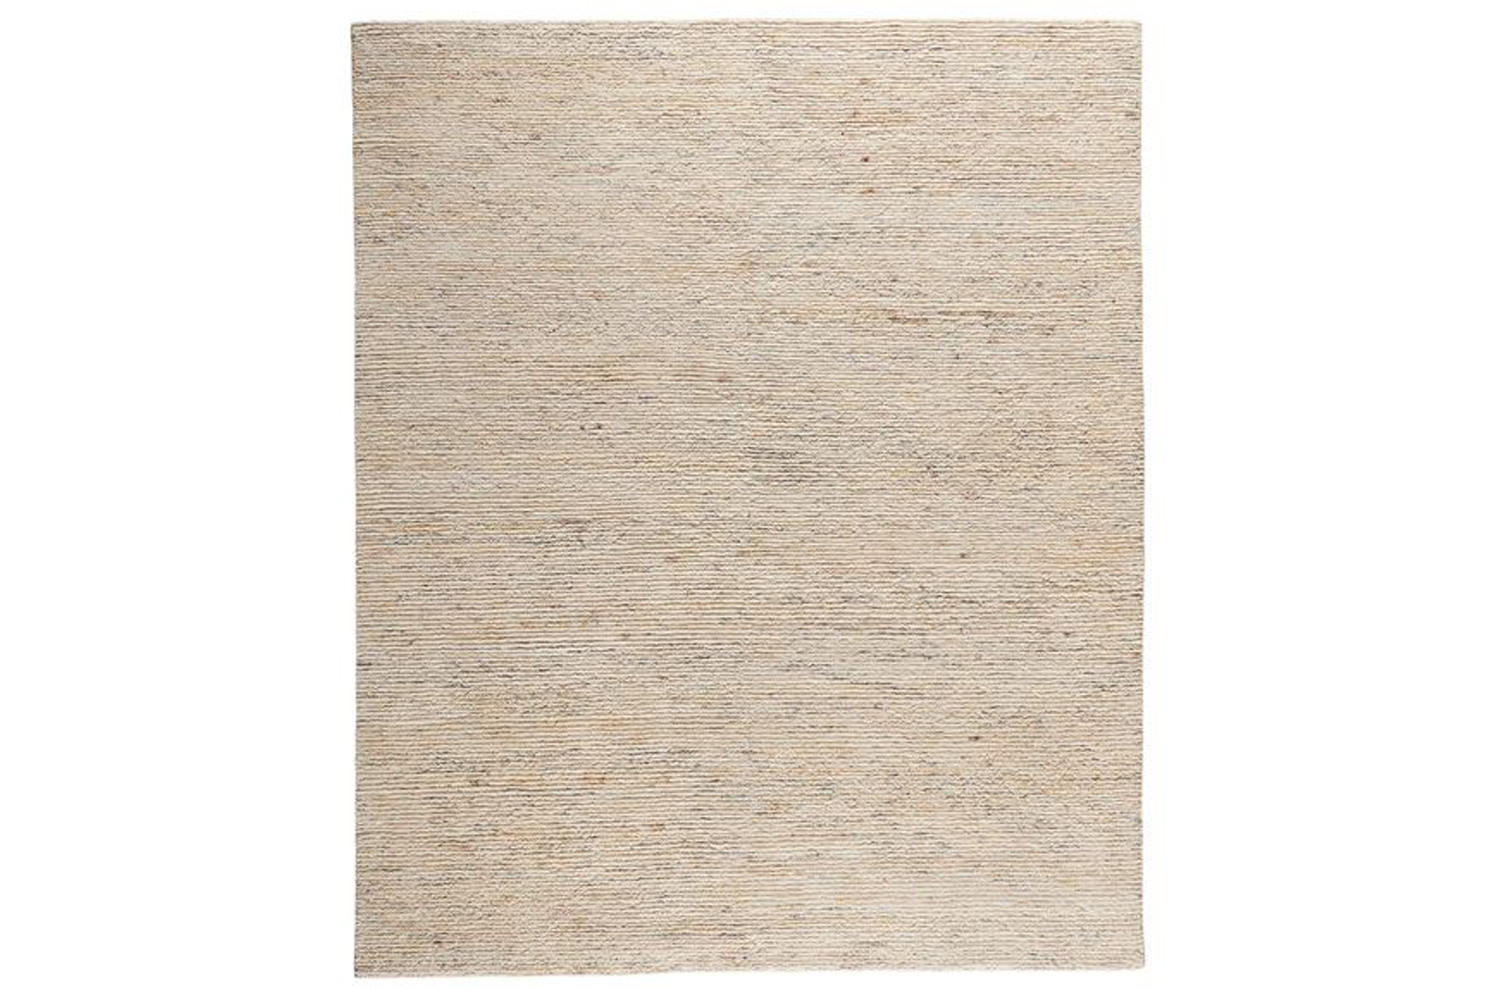 From Mitchell Gold + Bob Williams, the Amsterdam Rug is available in natural (shown) and midnight; starting at $76loading=